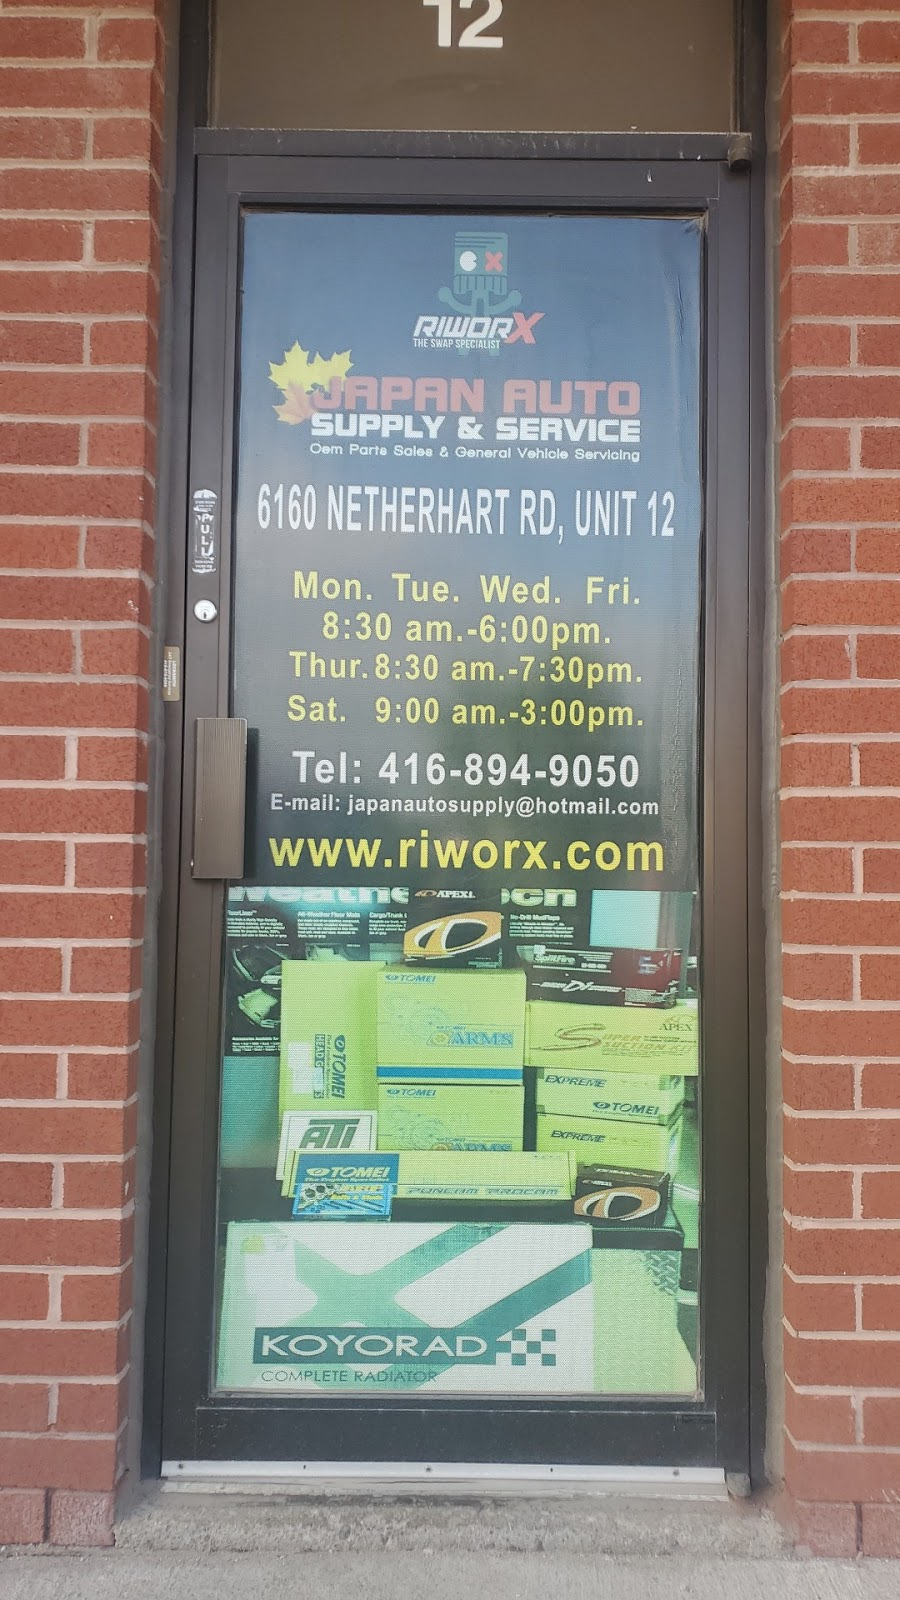 RiworX   car repair   6160 Netherhart Rd #12, Mississauga, ON L5T 2G6, Canada   4168949050 OR +1 416-894-9050